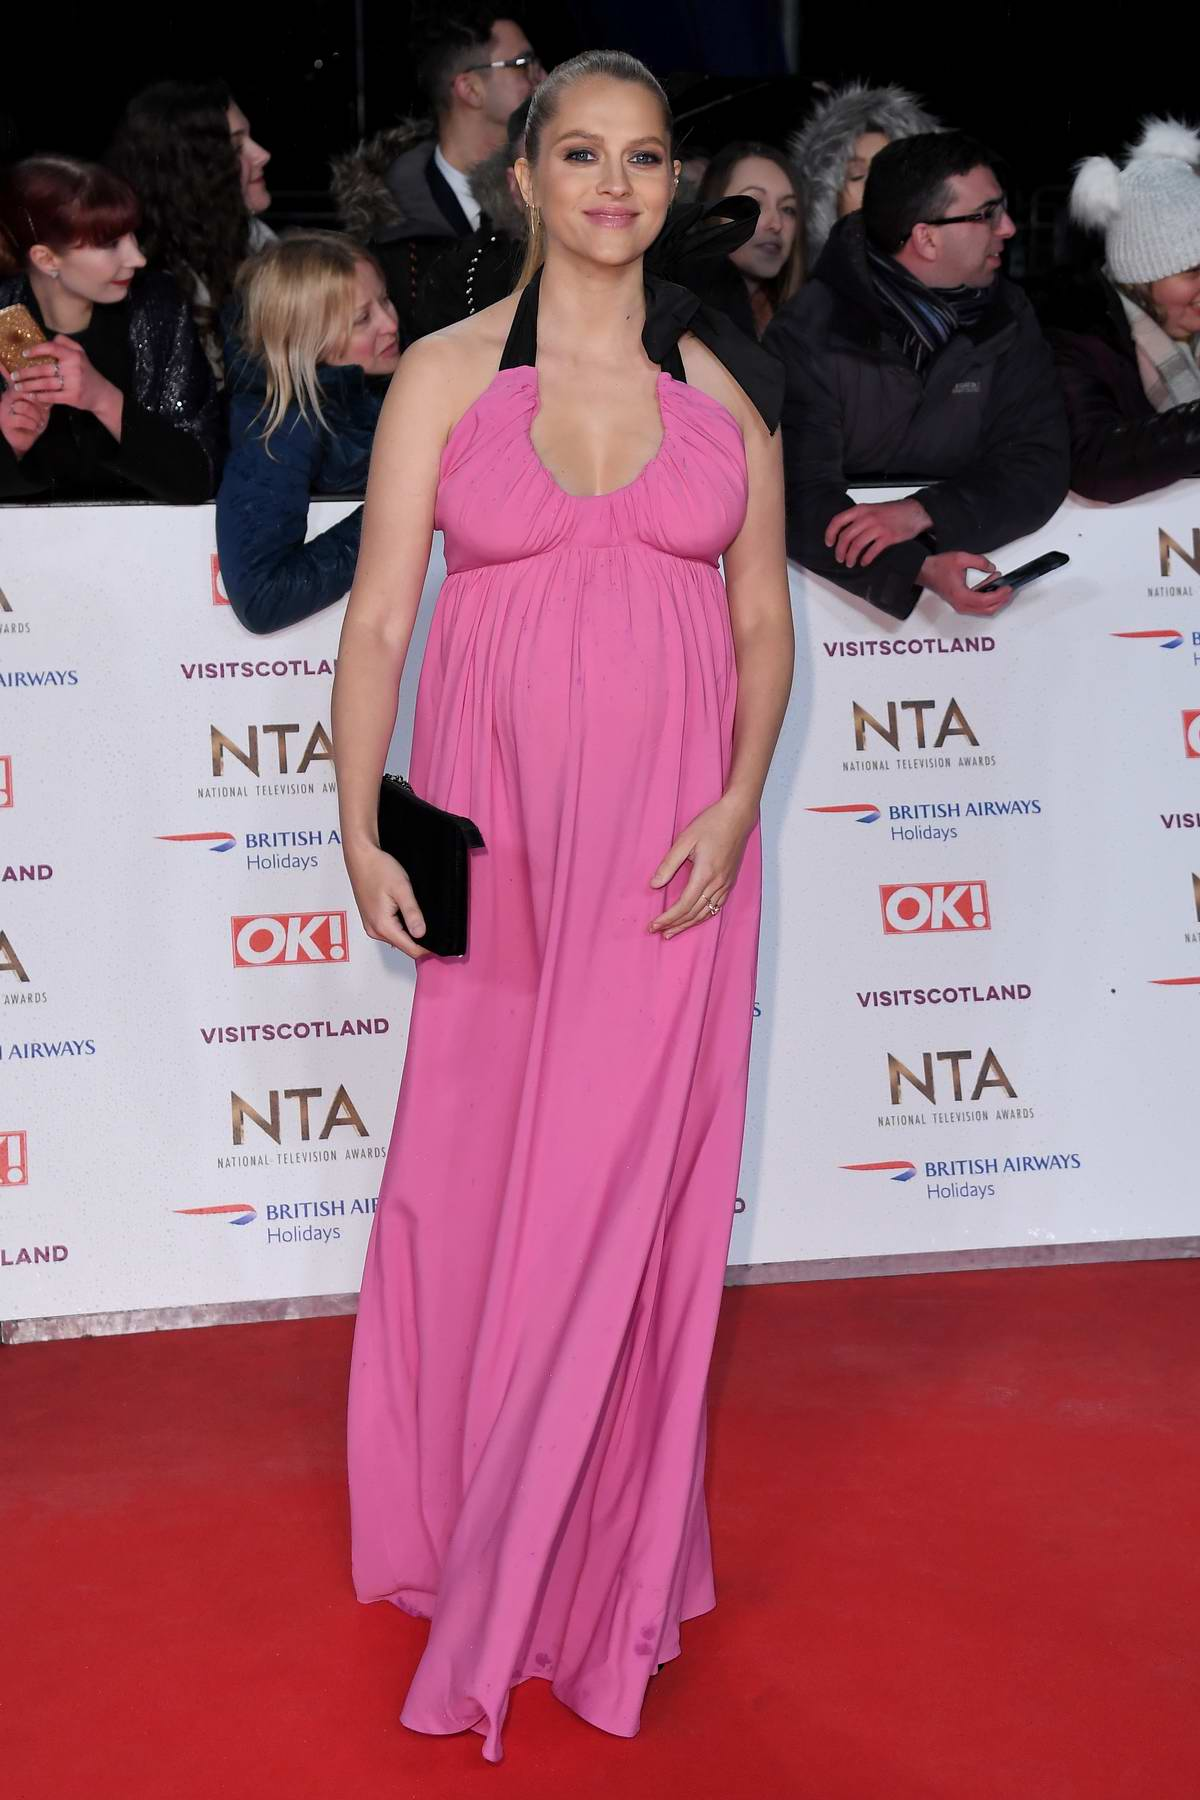 Teresa Palmer attends 23rd National Television Awards in London, UK